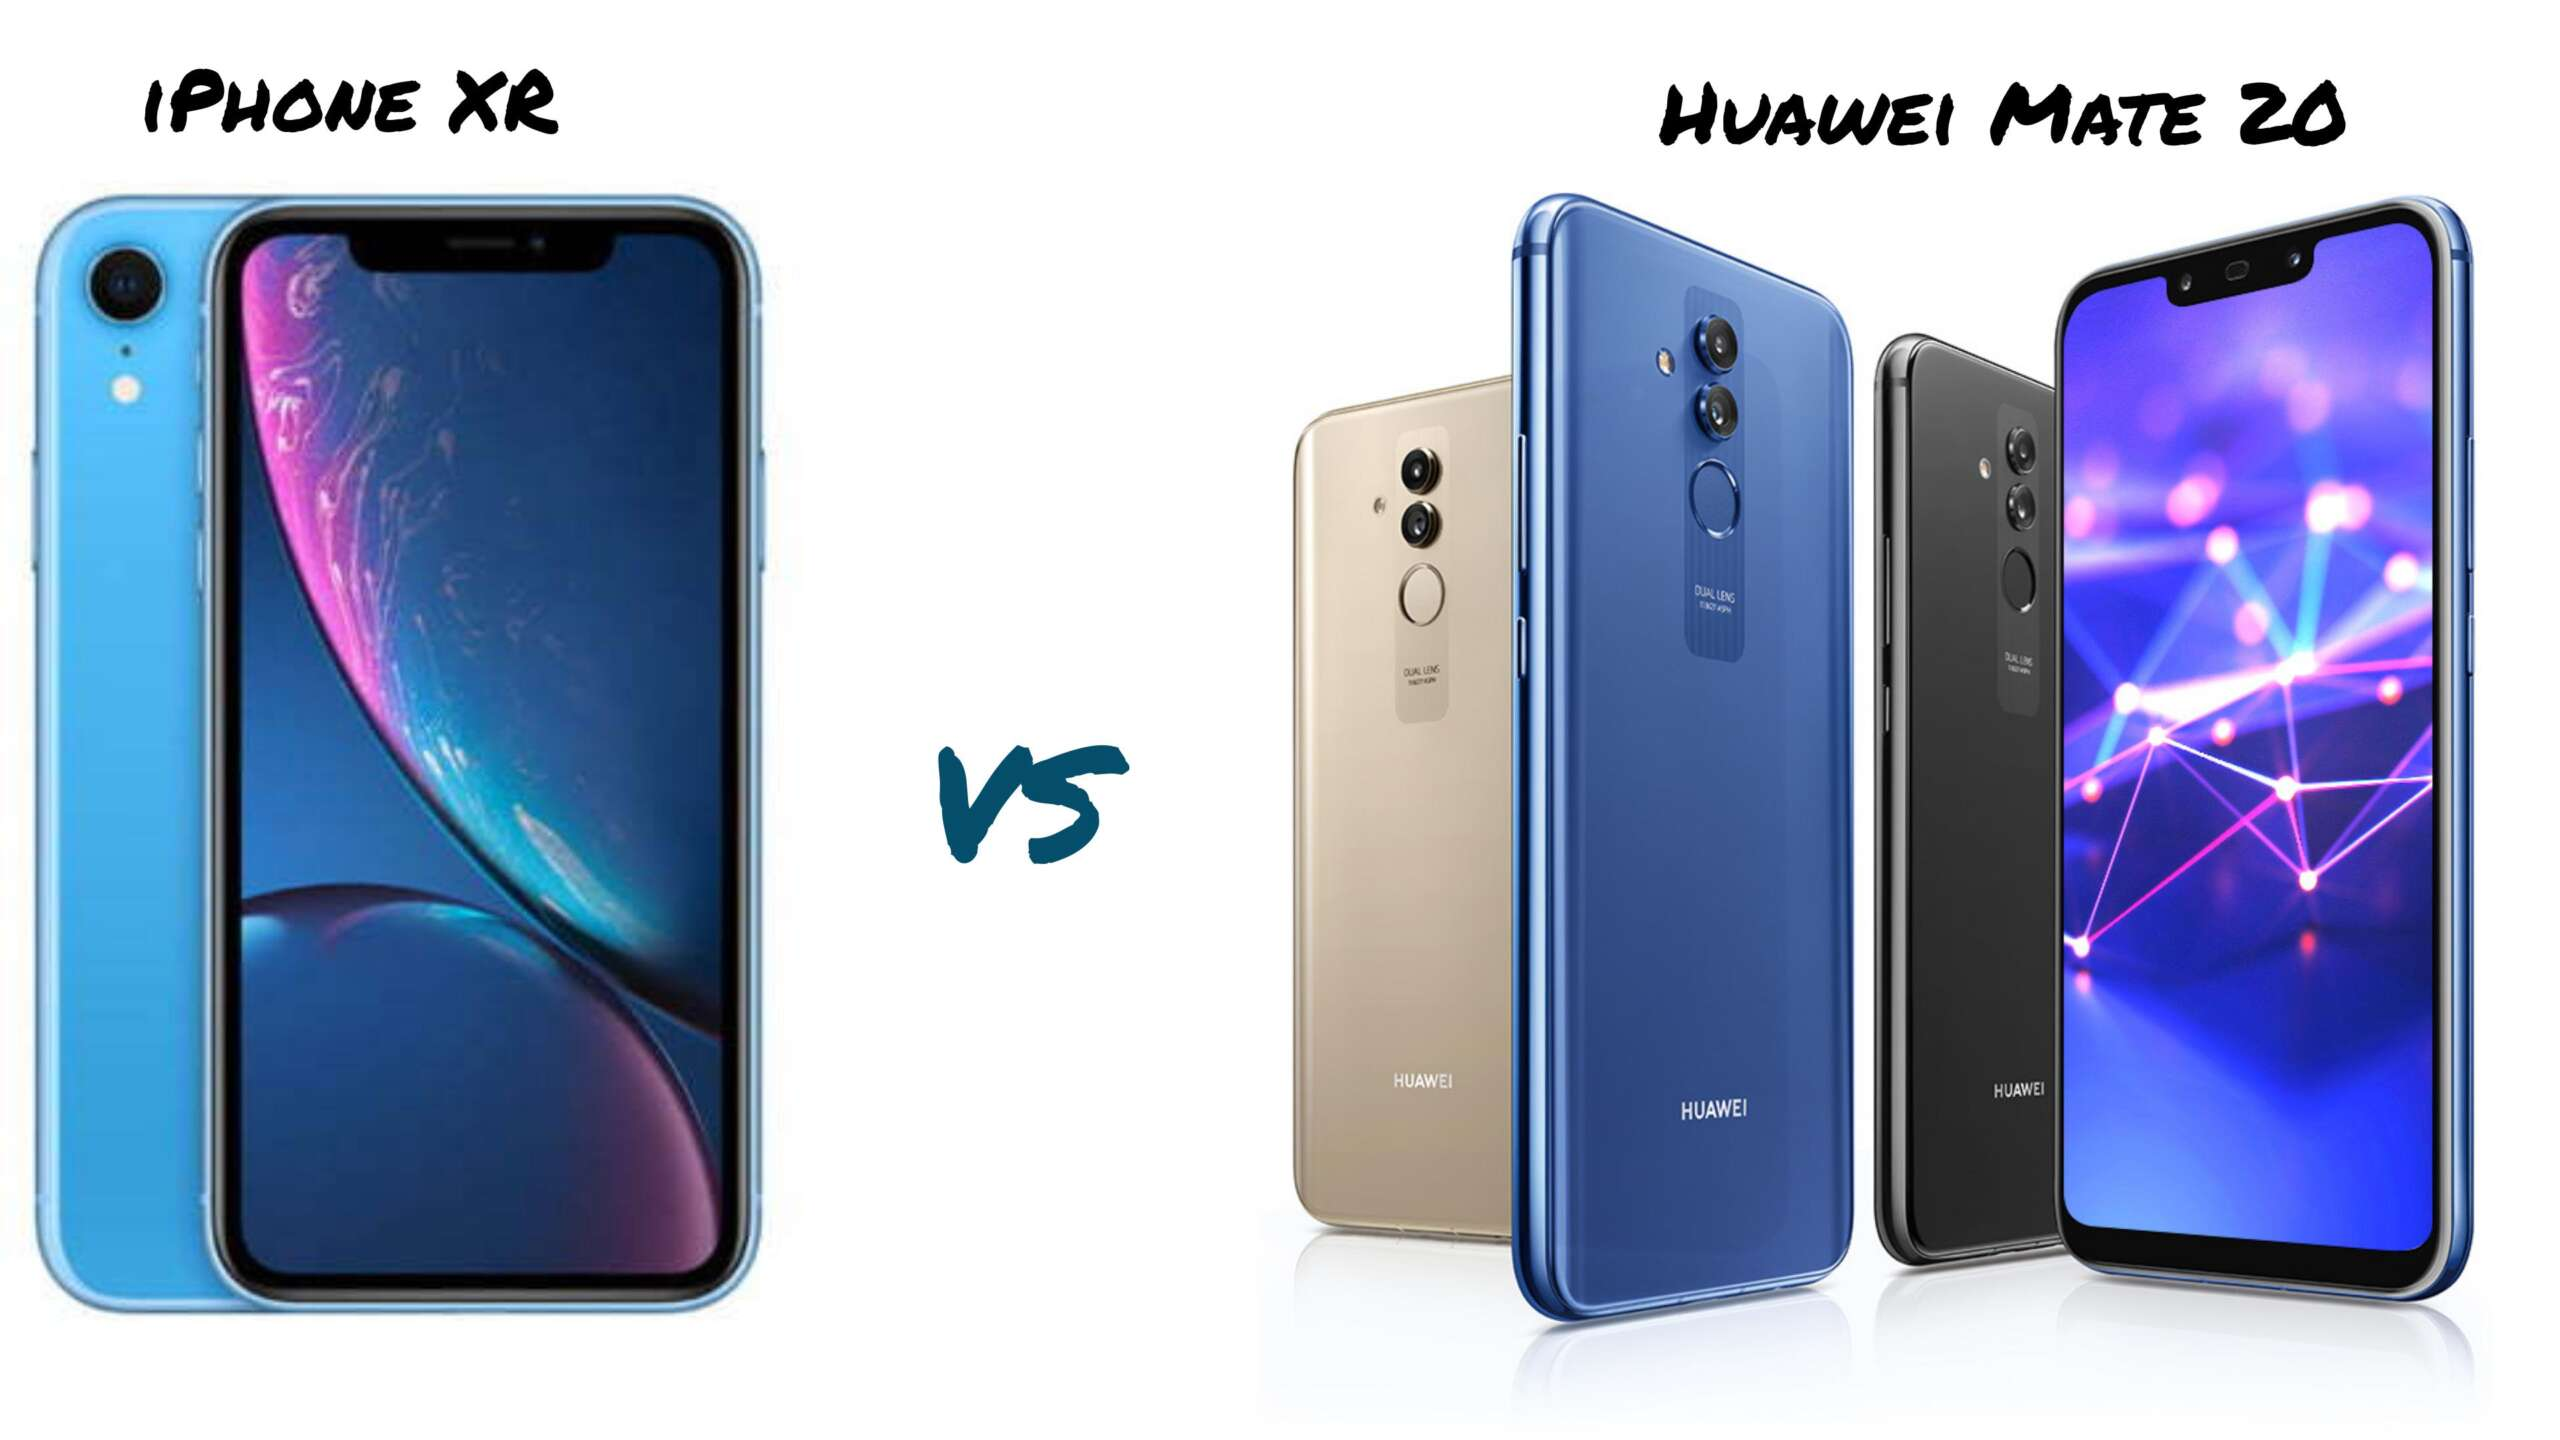 iPhone XR vs Huawei Mate 20